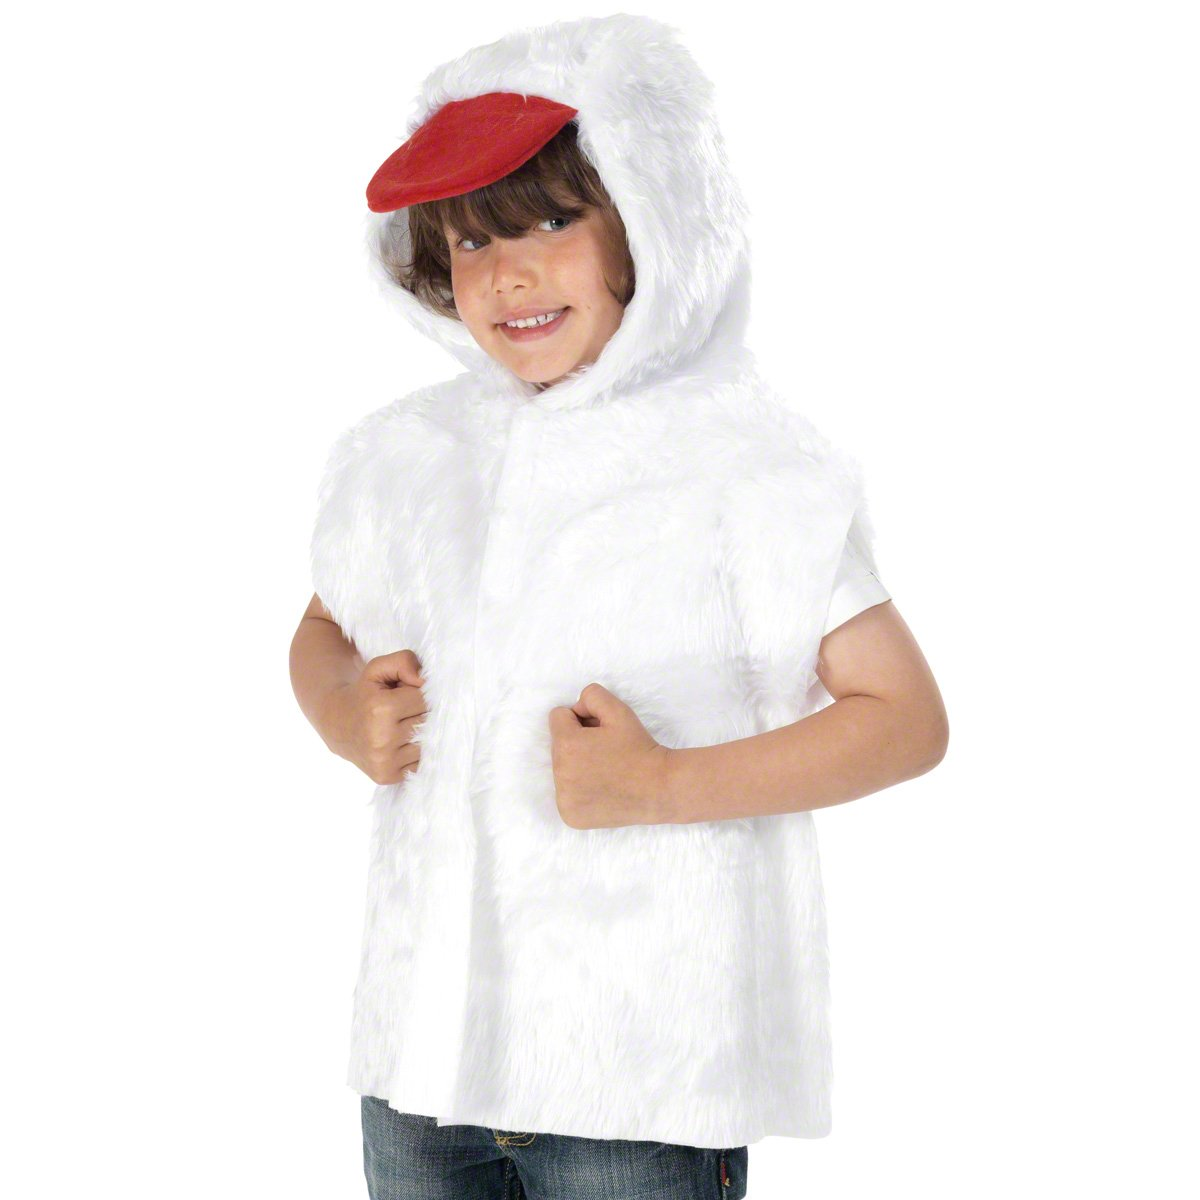 Charlie Crow Duck Costume for Kids one size 3-9 Yrs Charlie Crow Amazon.co.uk Toys u0026 Games  sc 1 st  Amazon UK & Charlie Crow Duck Costume for Kids one size 3-9 Yrs: Charlie Crow ...